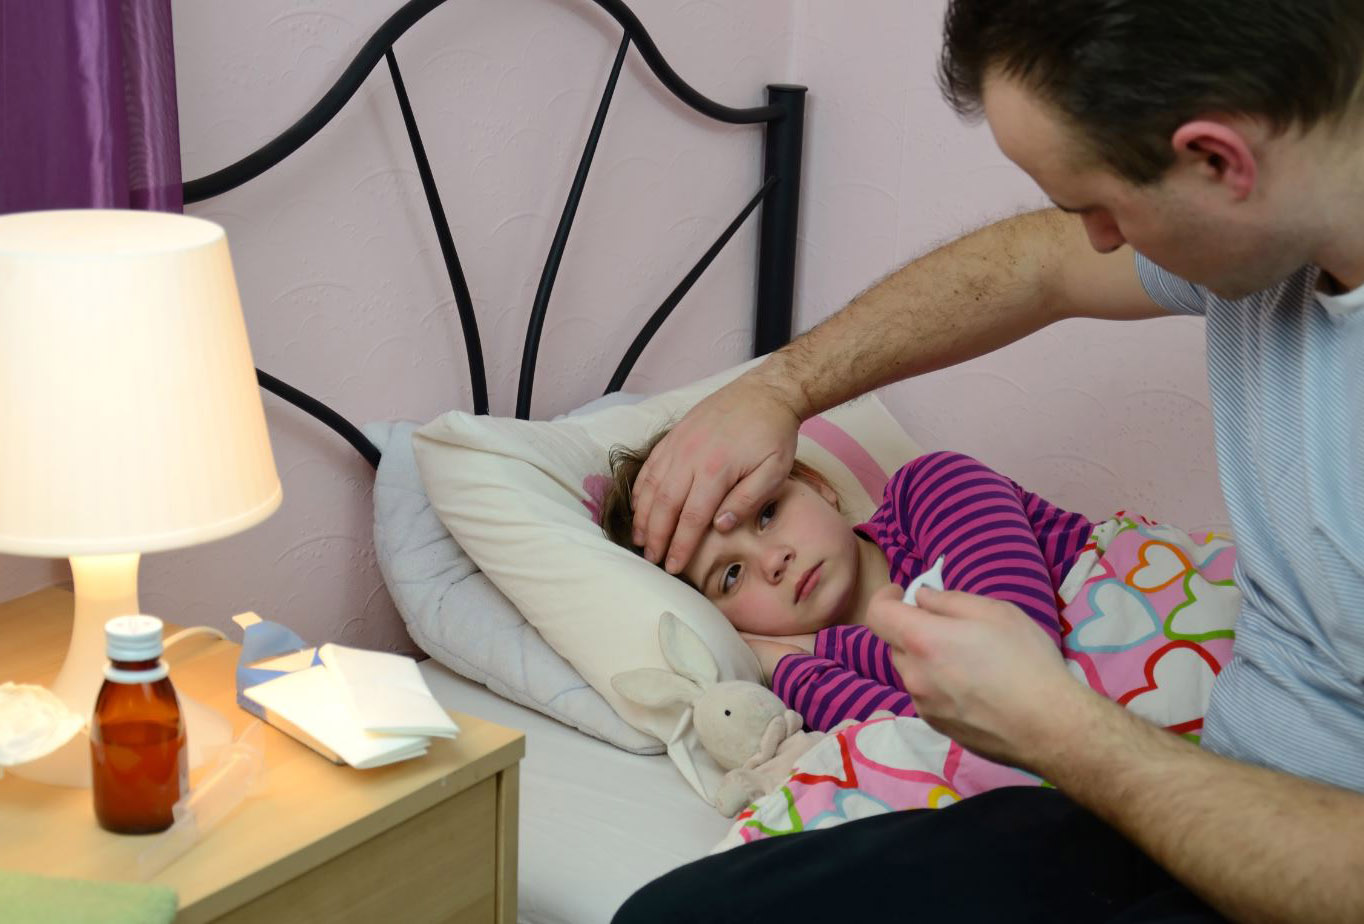 father tends to sick child